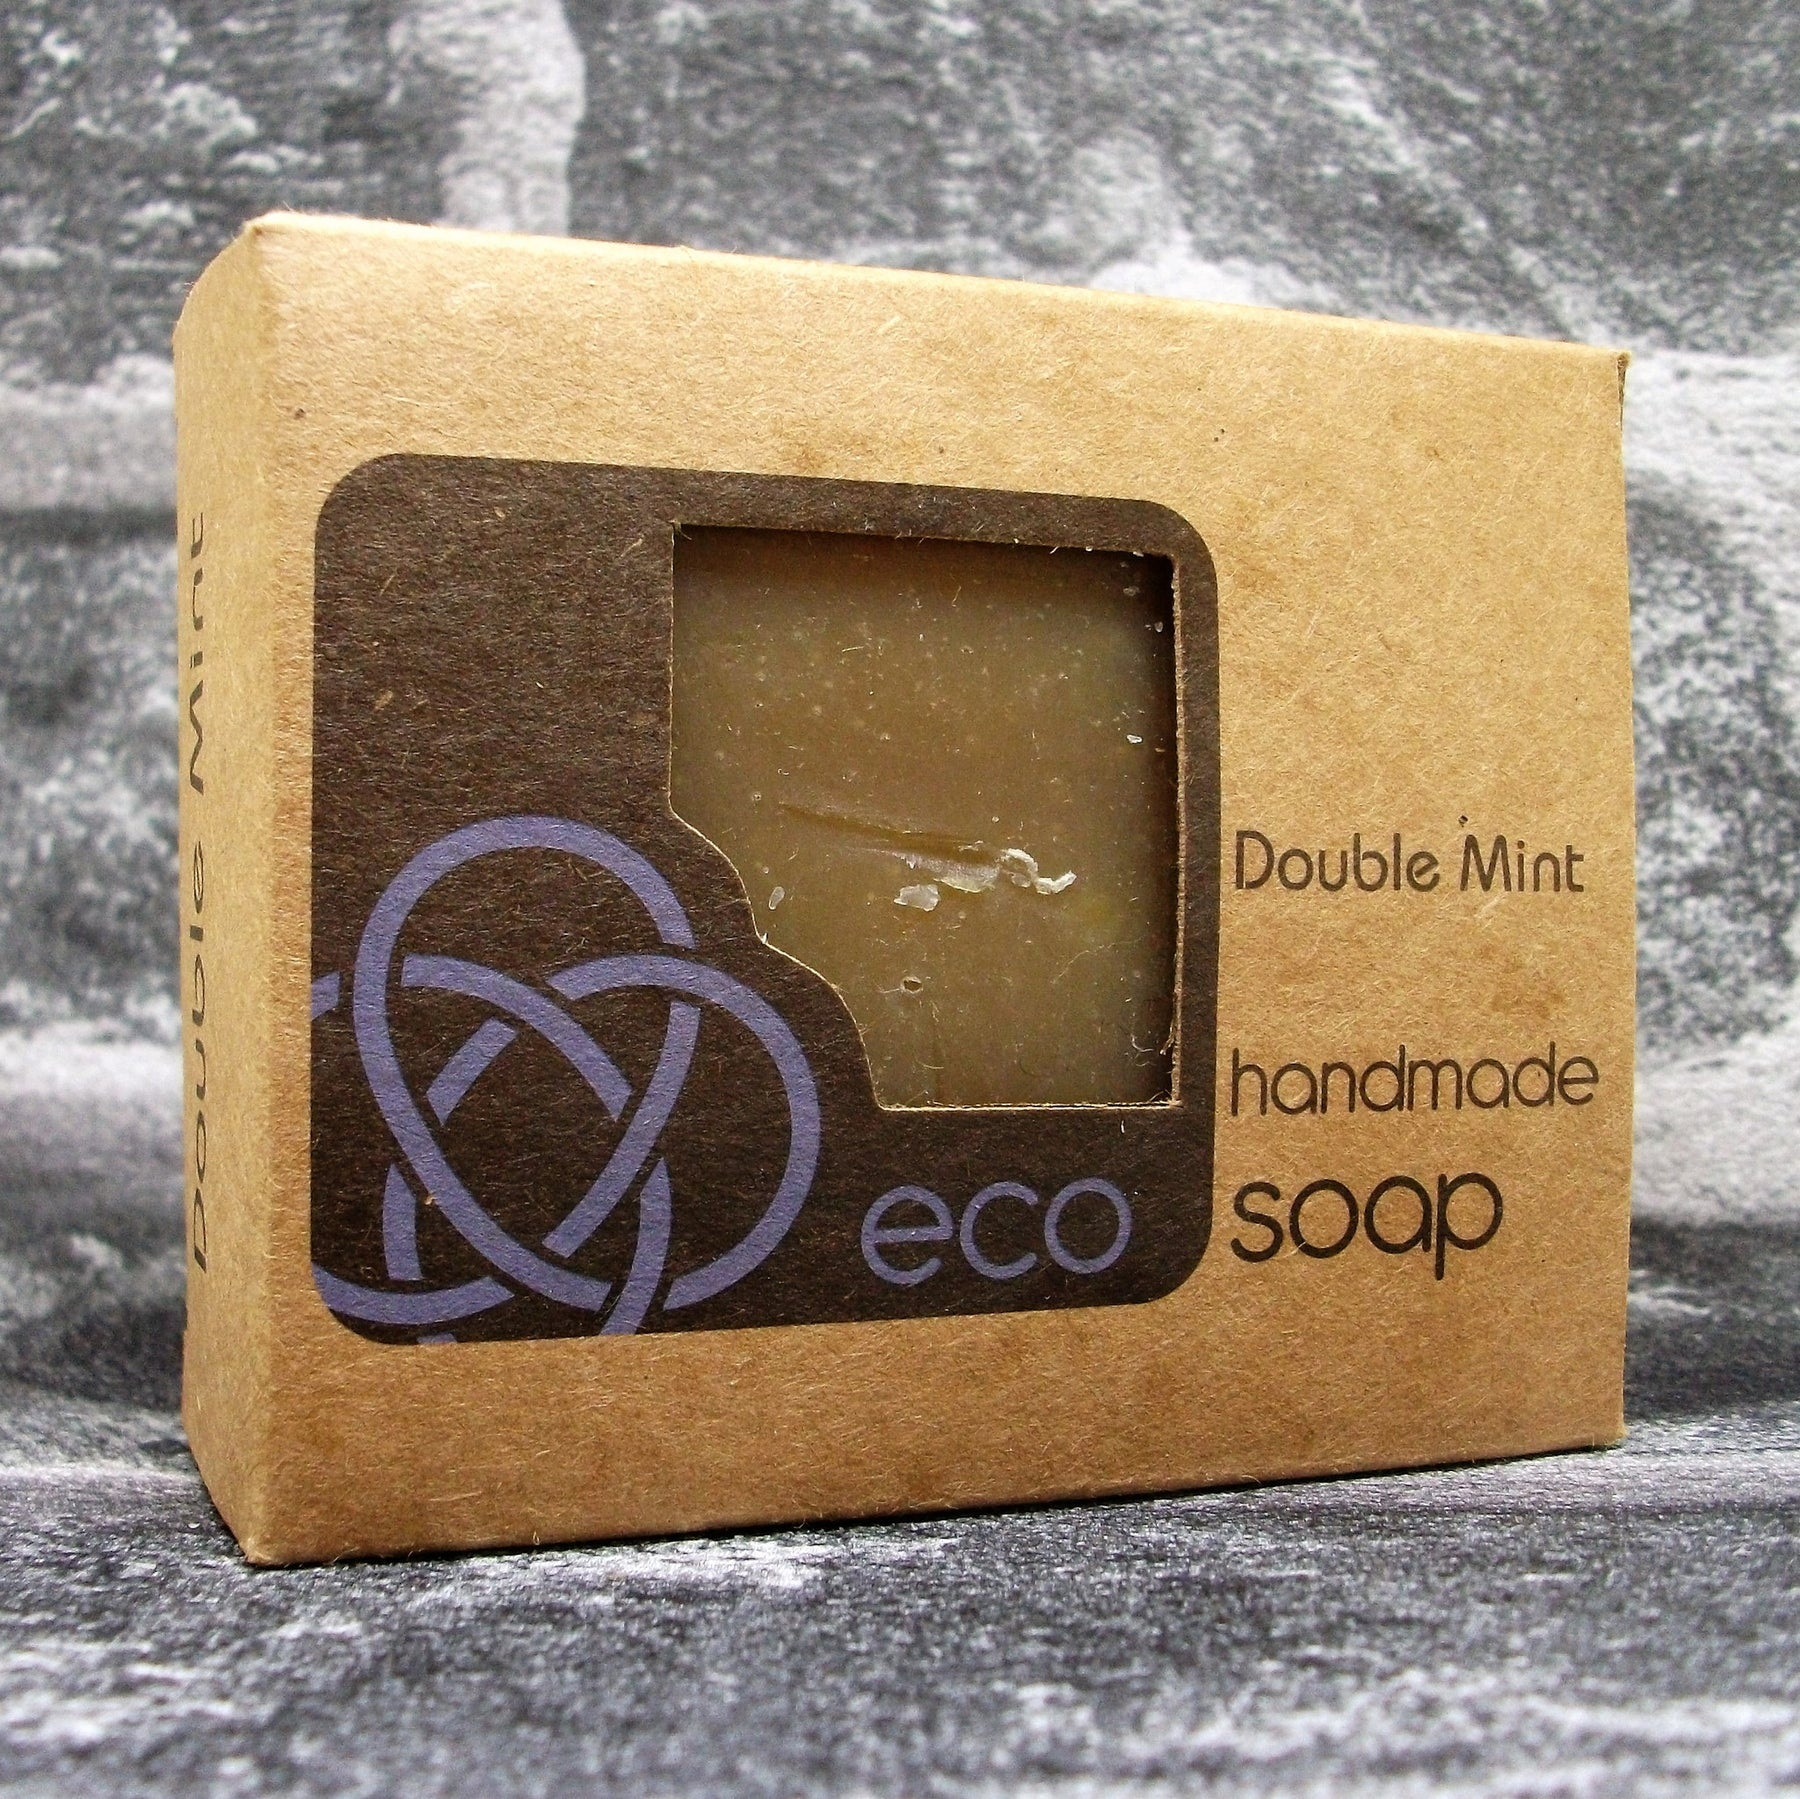 Eco Soaps Double Mint Freshly Handmade Natural Soap Bar - Adam & Eco